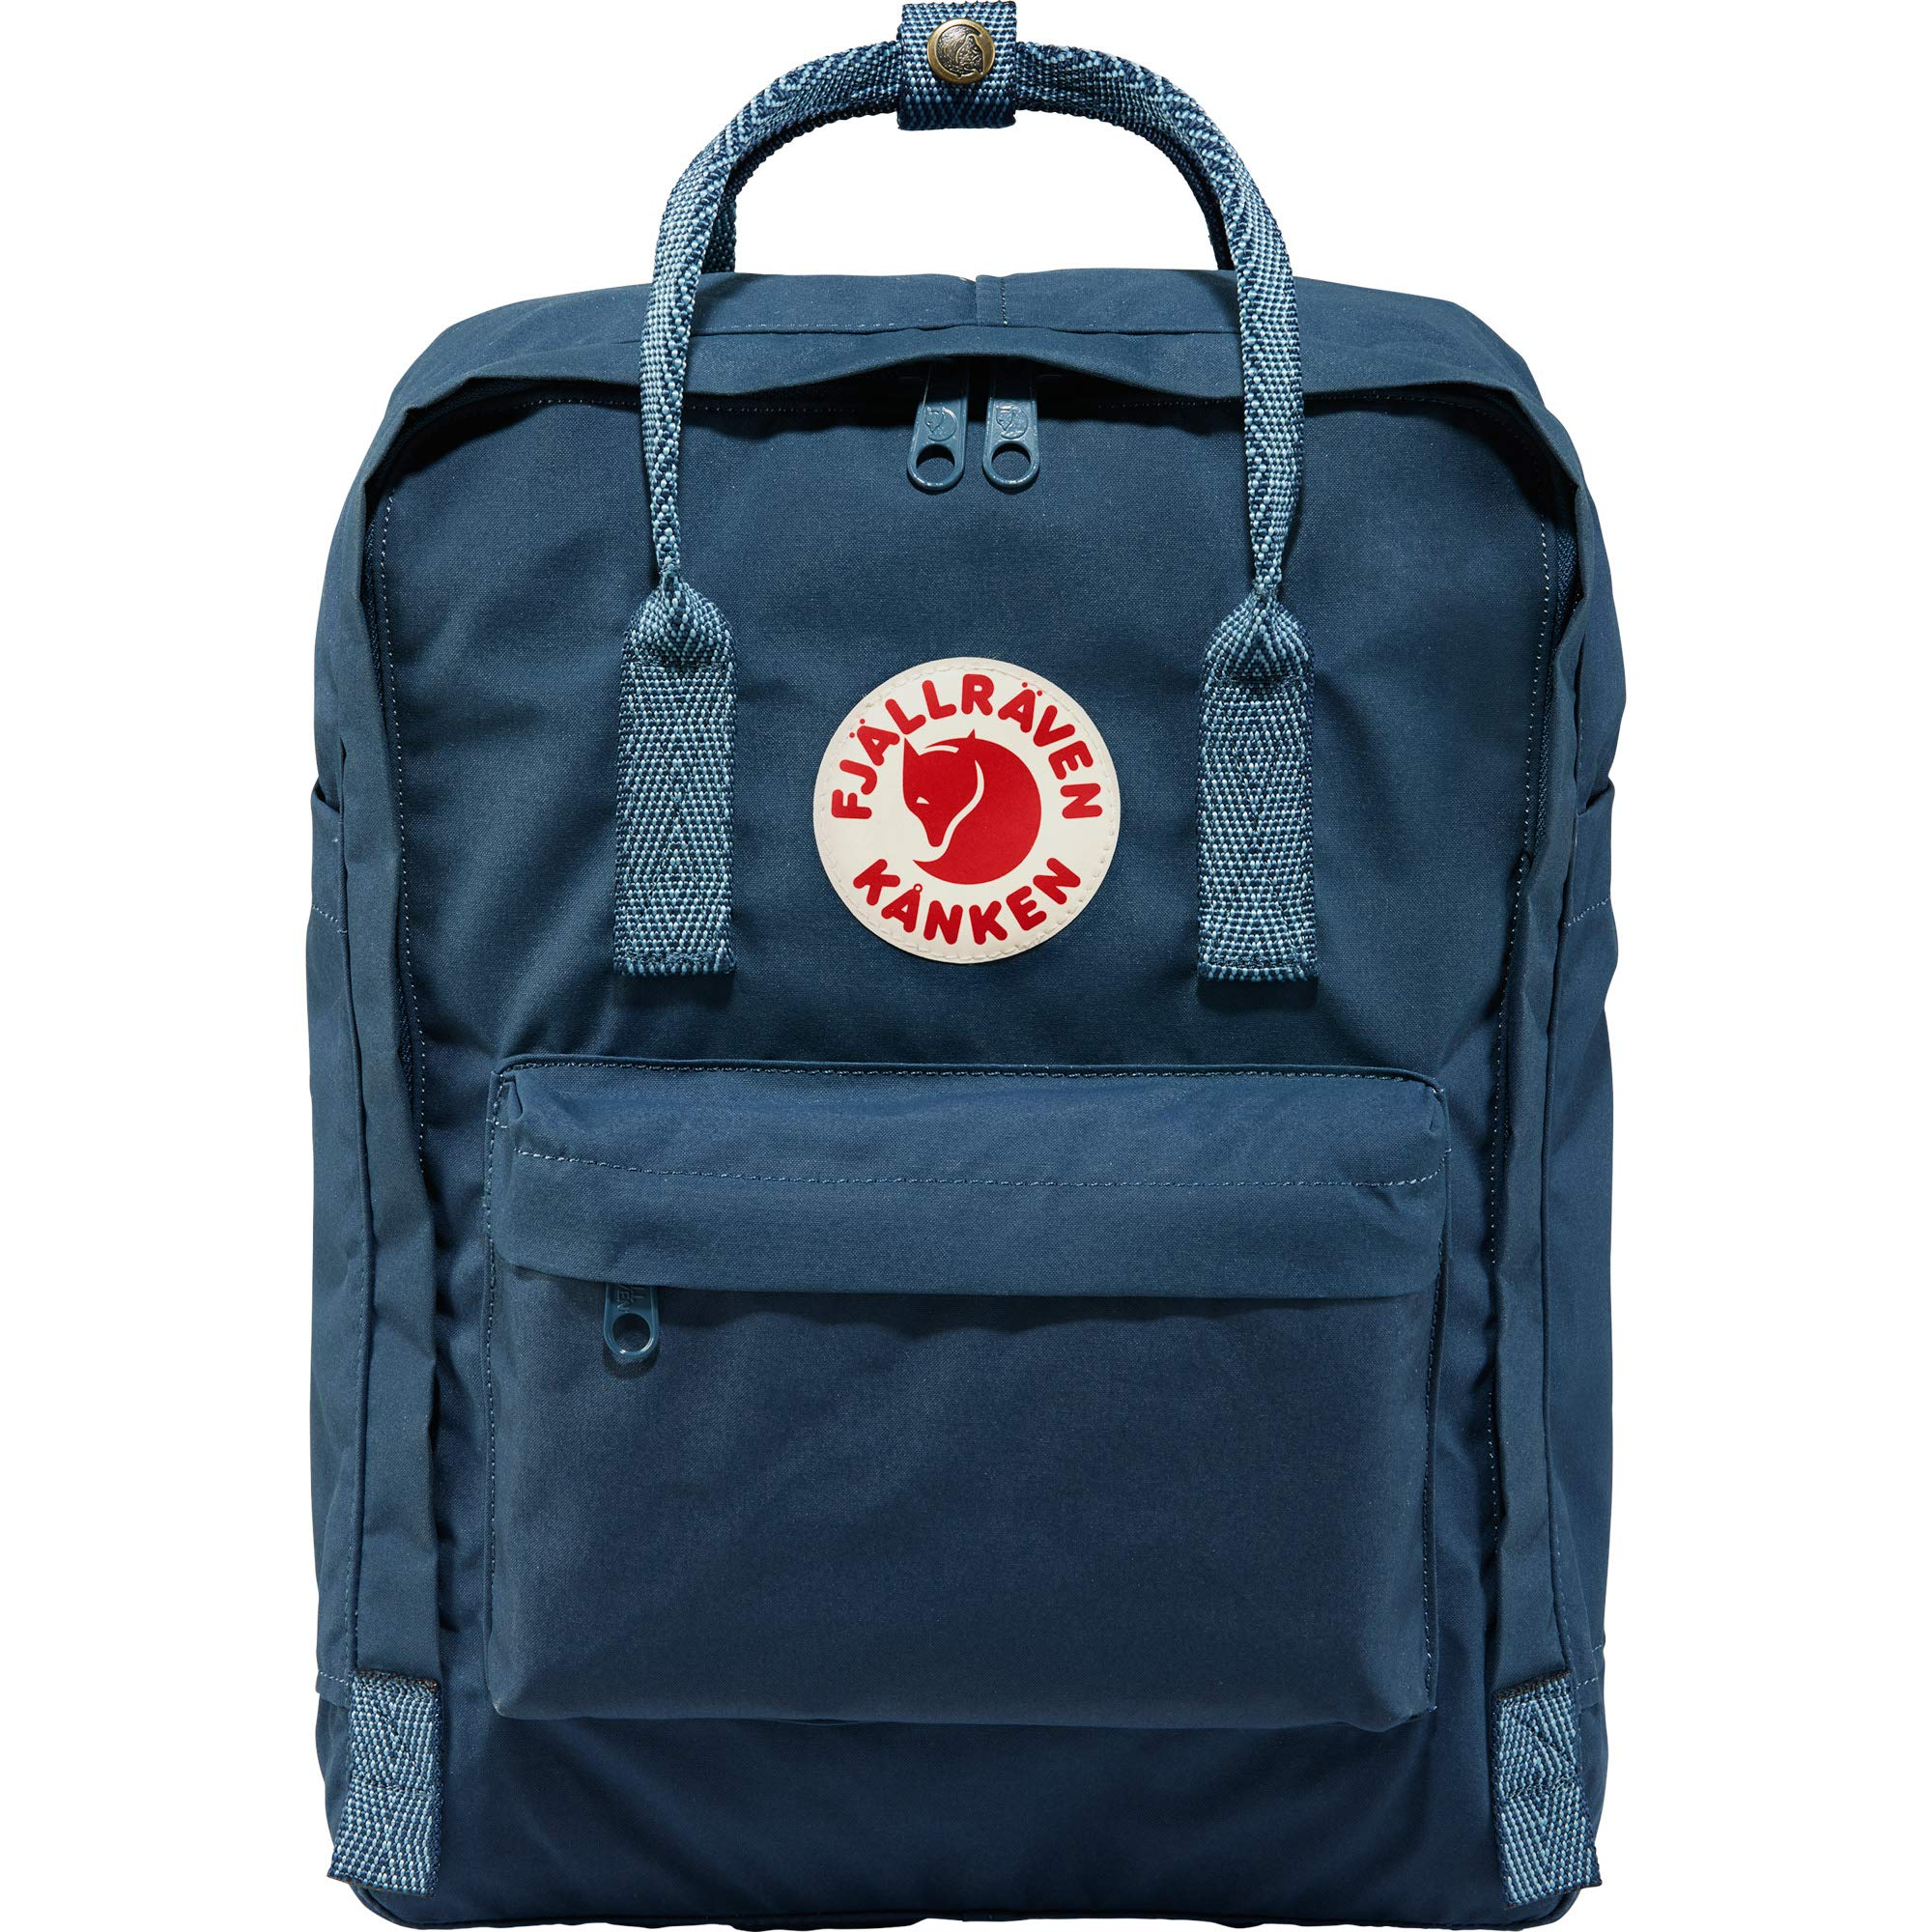 Fjallraven - Kanken Classic Backpack for Everyday, Royal Blue/Goose Eye by Fjallraven